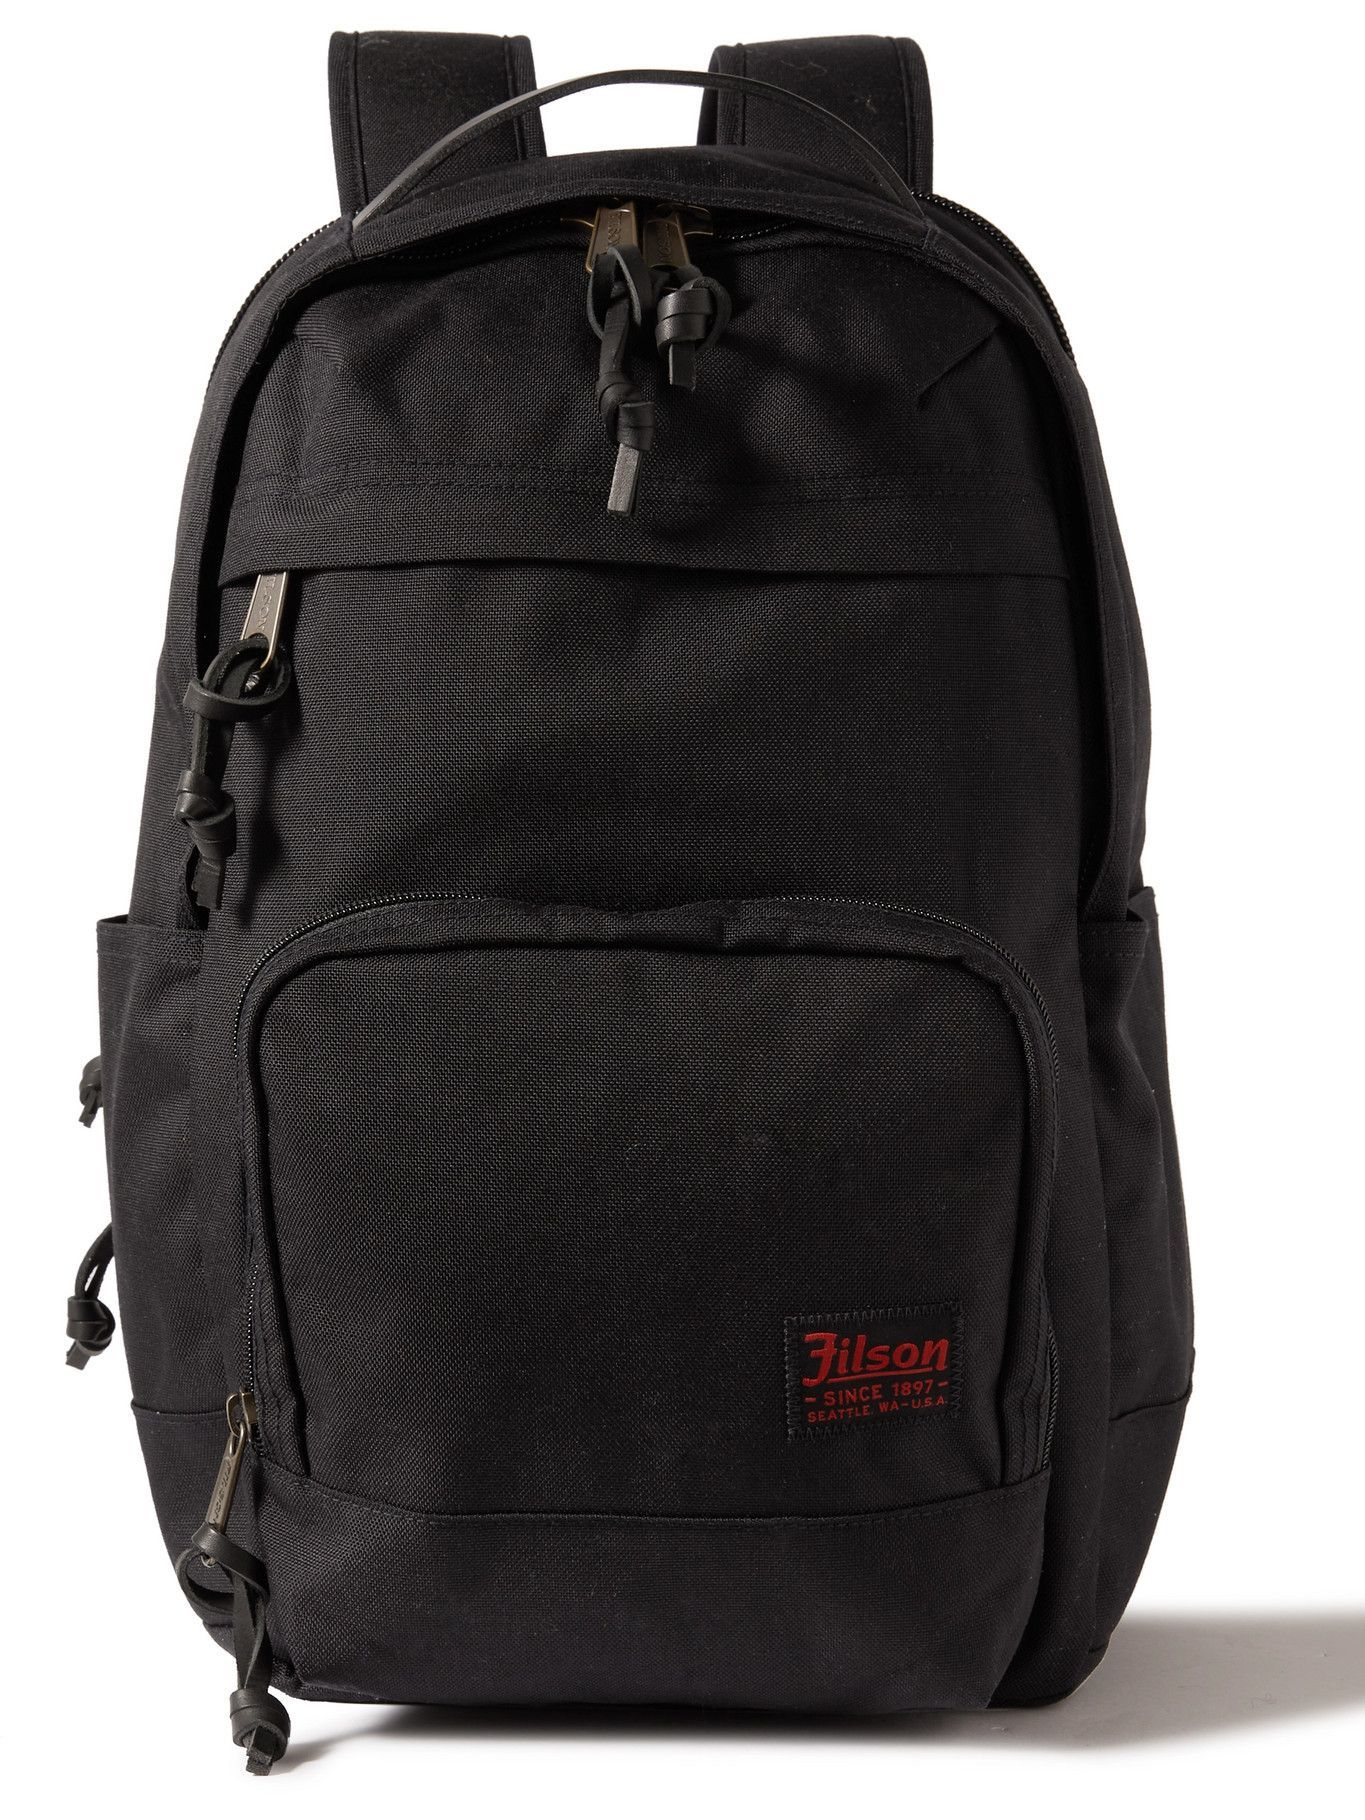 Photo: FILSON - Dryden Leather-Trimmed CORDURA Backpack